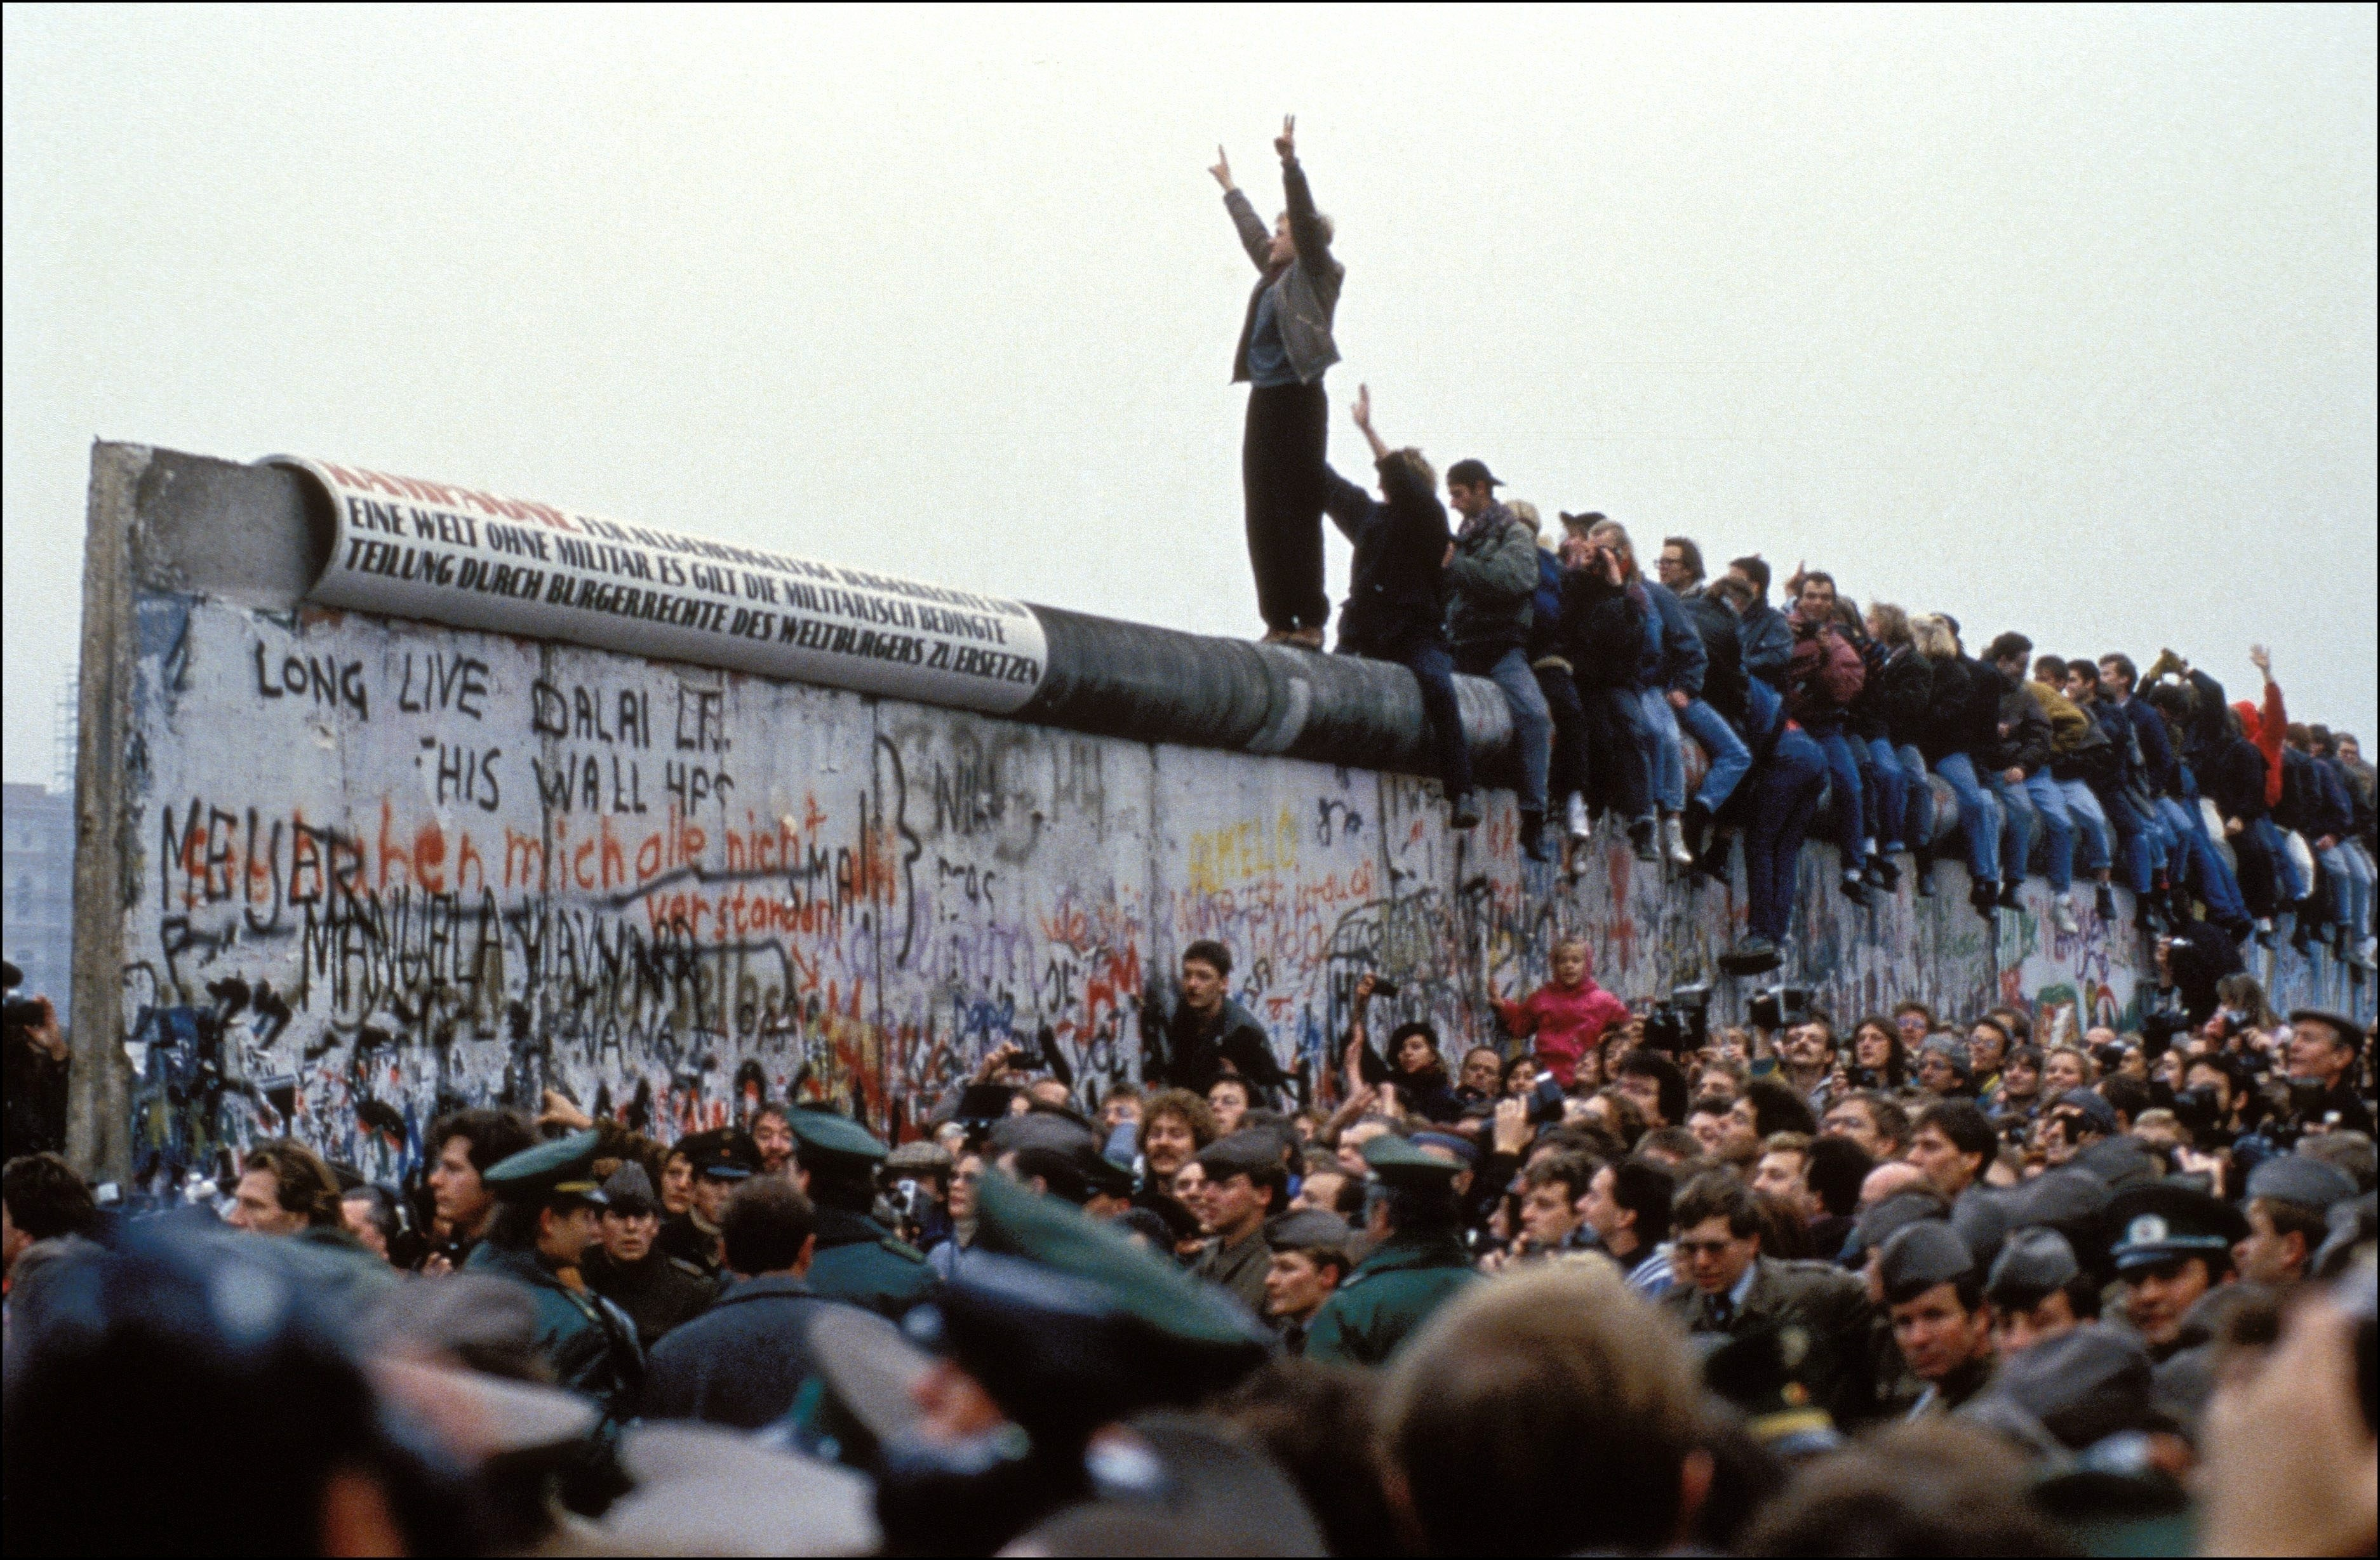 """Berlin's mayor to Trump: """"Mr President, don't build this wall"""""""